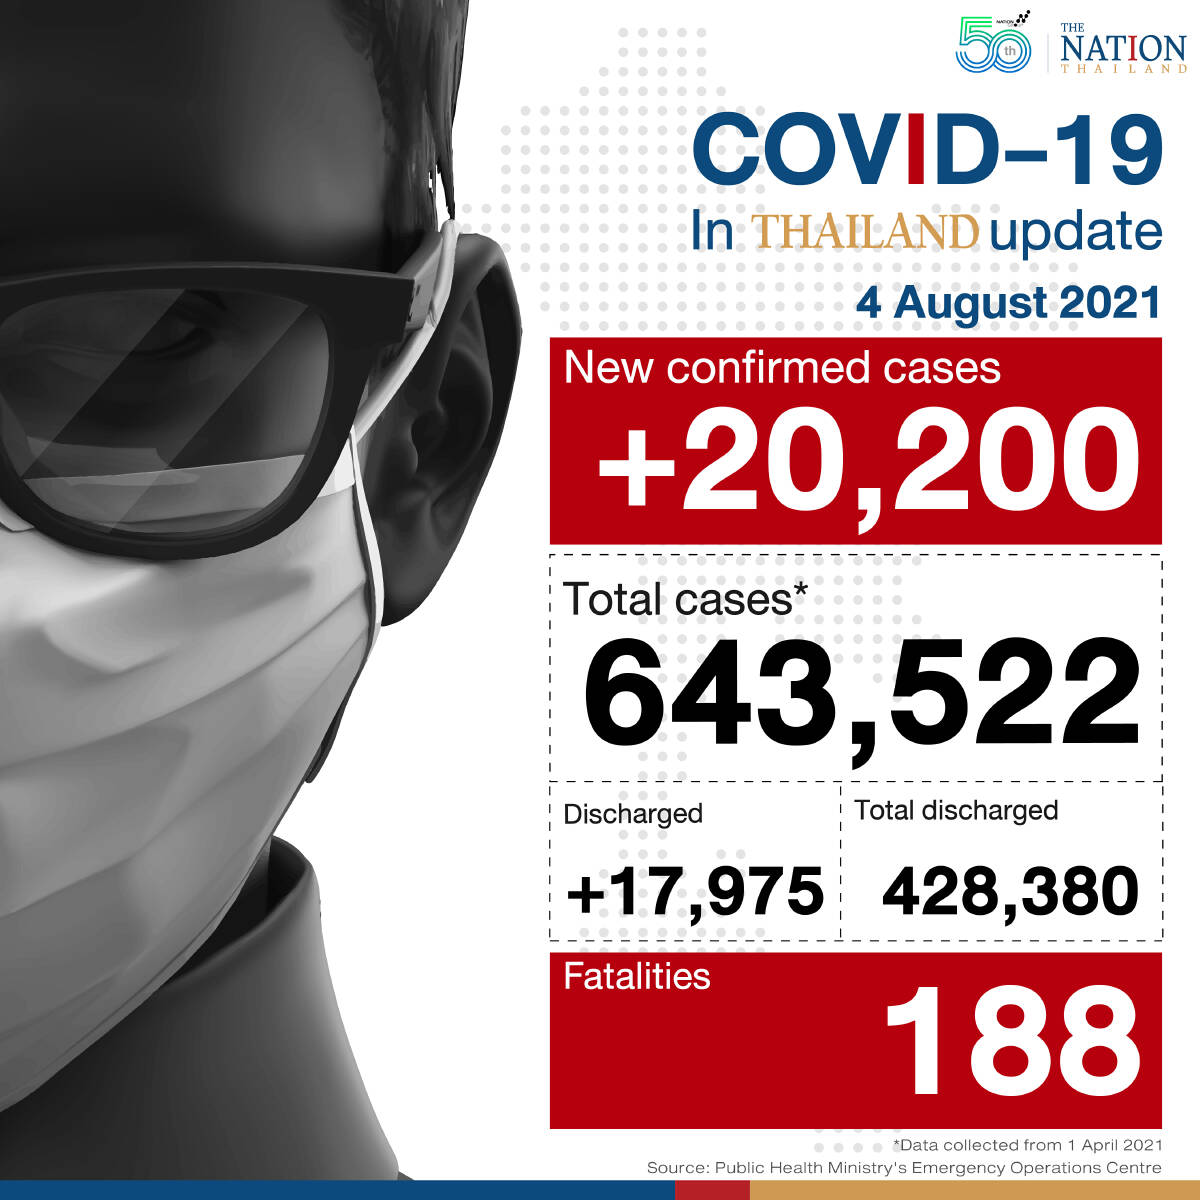 Daily infections and deaths reach new high on Wednesday at 20,200 infections and 188 deaths